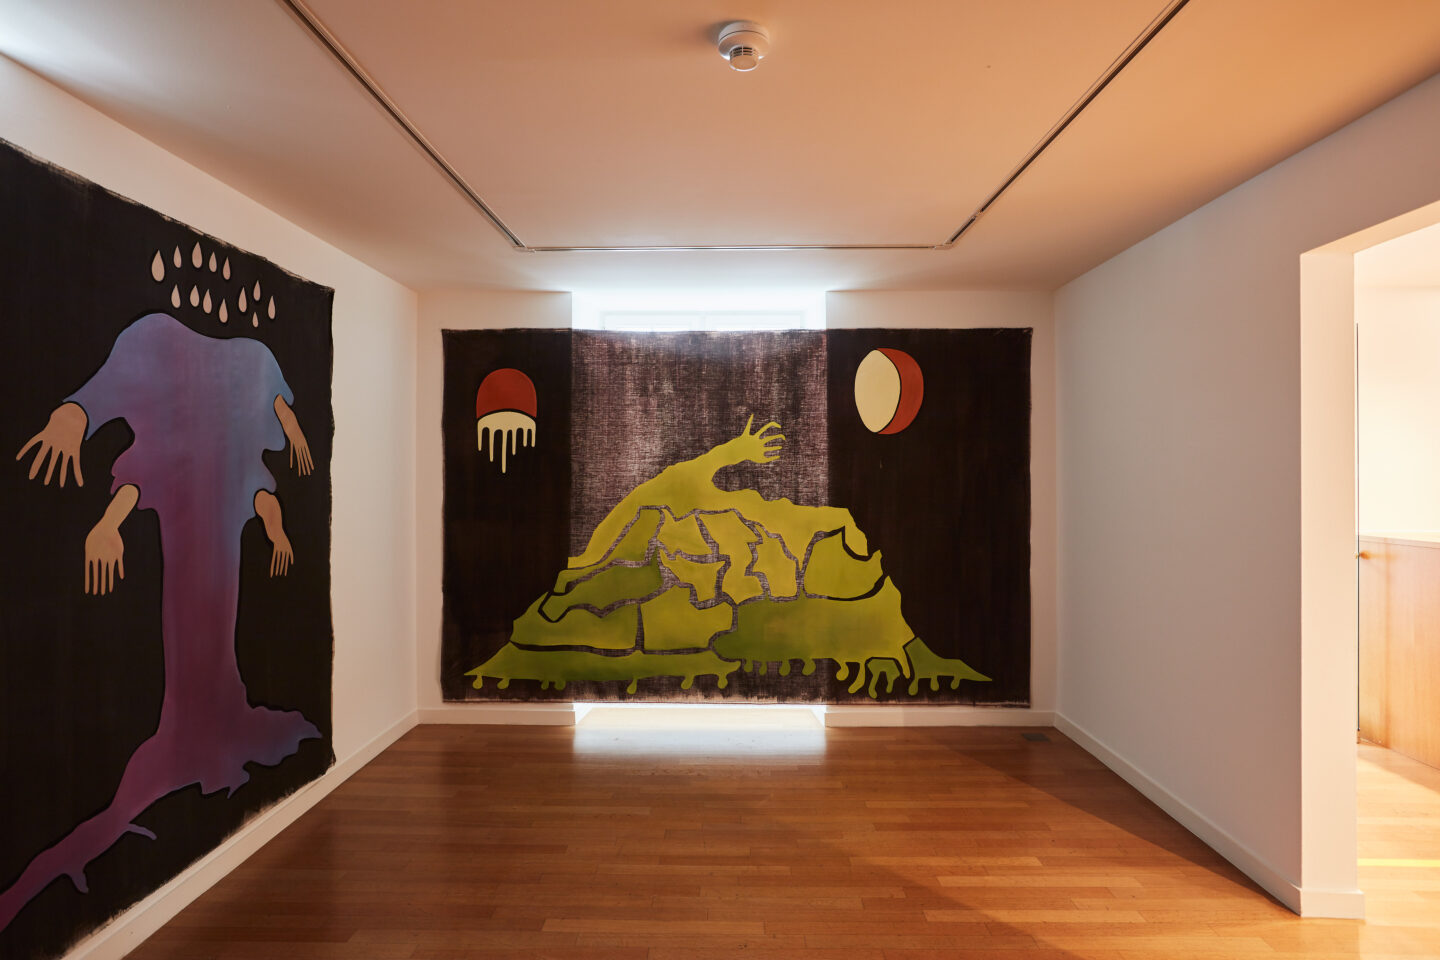 Exhibition View Groupshow «Motor; view on Inka Ter Haar, The Garden (6 of 6), oil on canvas, 330 x 210 cm, 2020» at Kunstraum Riehen, Riehen, Basel, 2020 / Photo: Moritz Schermbach / Courtesy: the artist